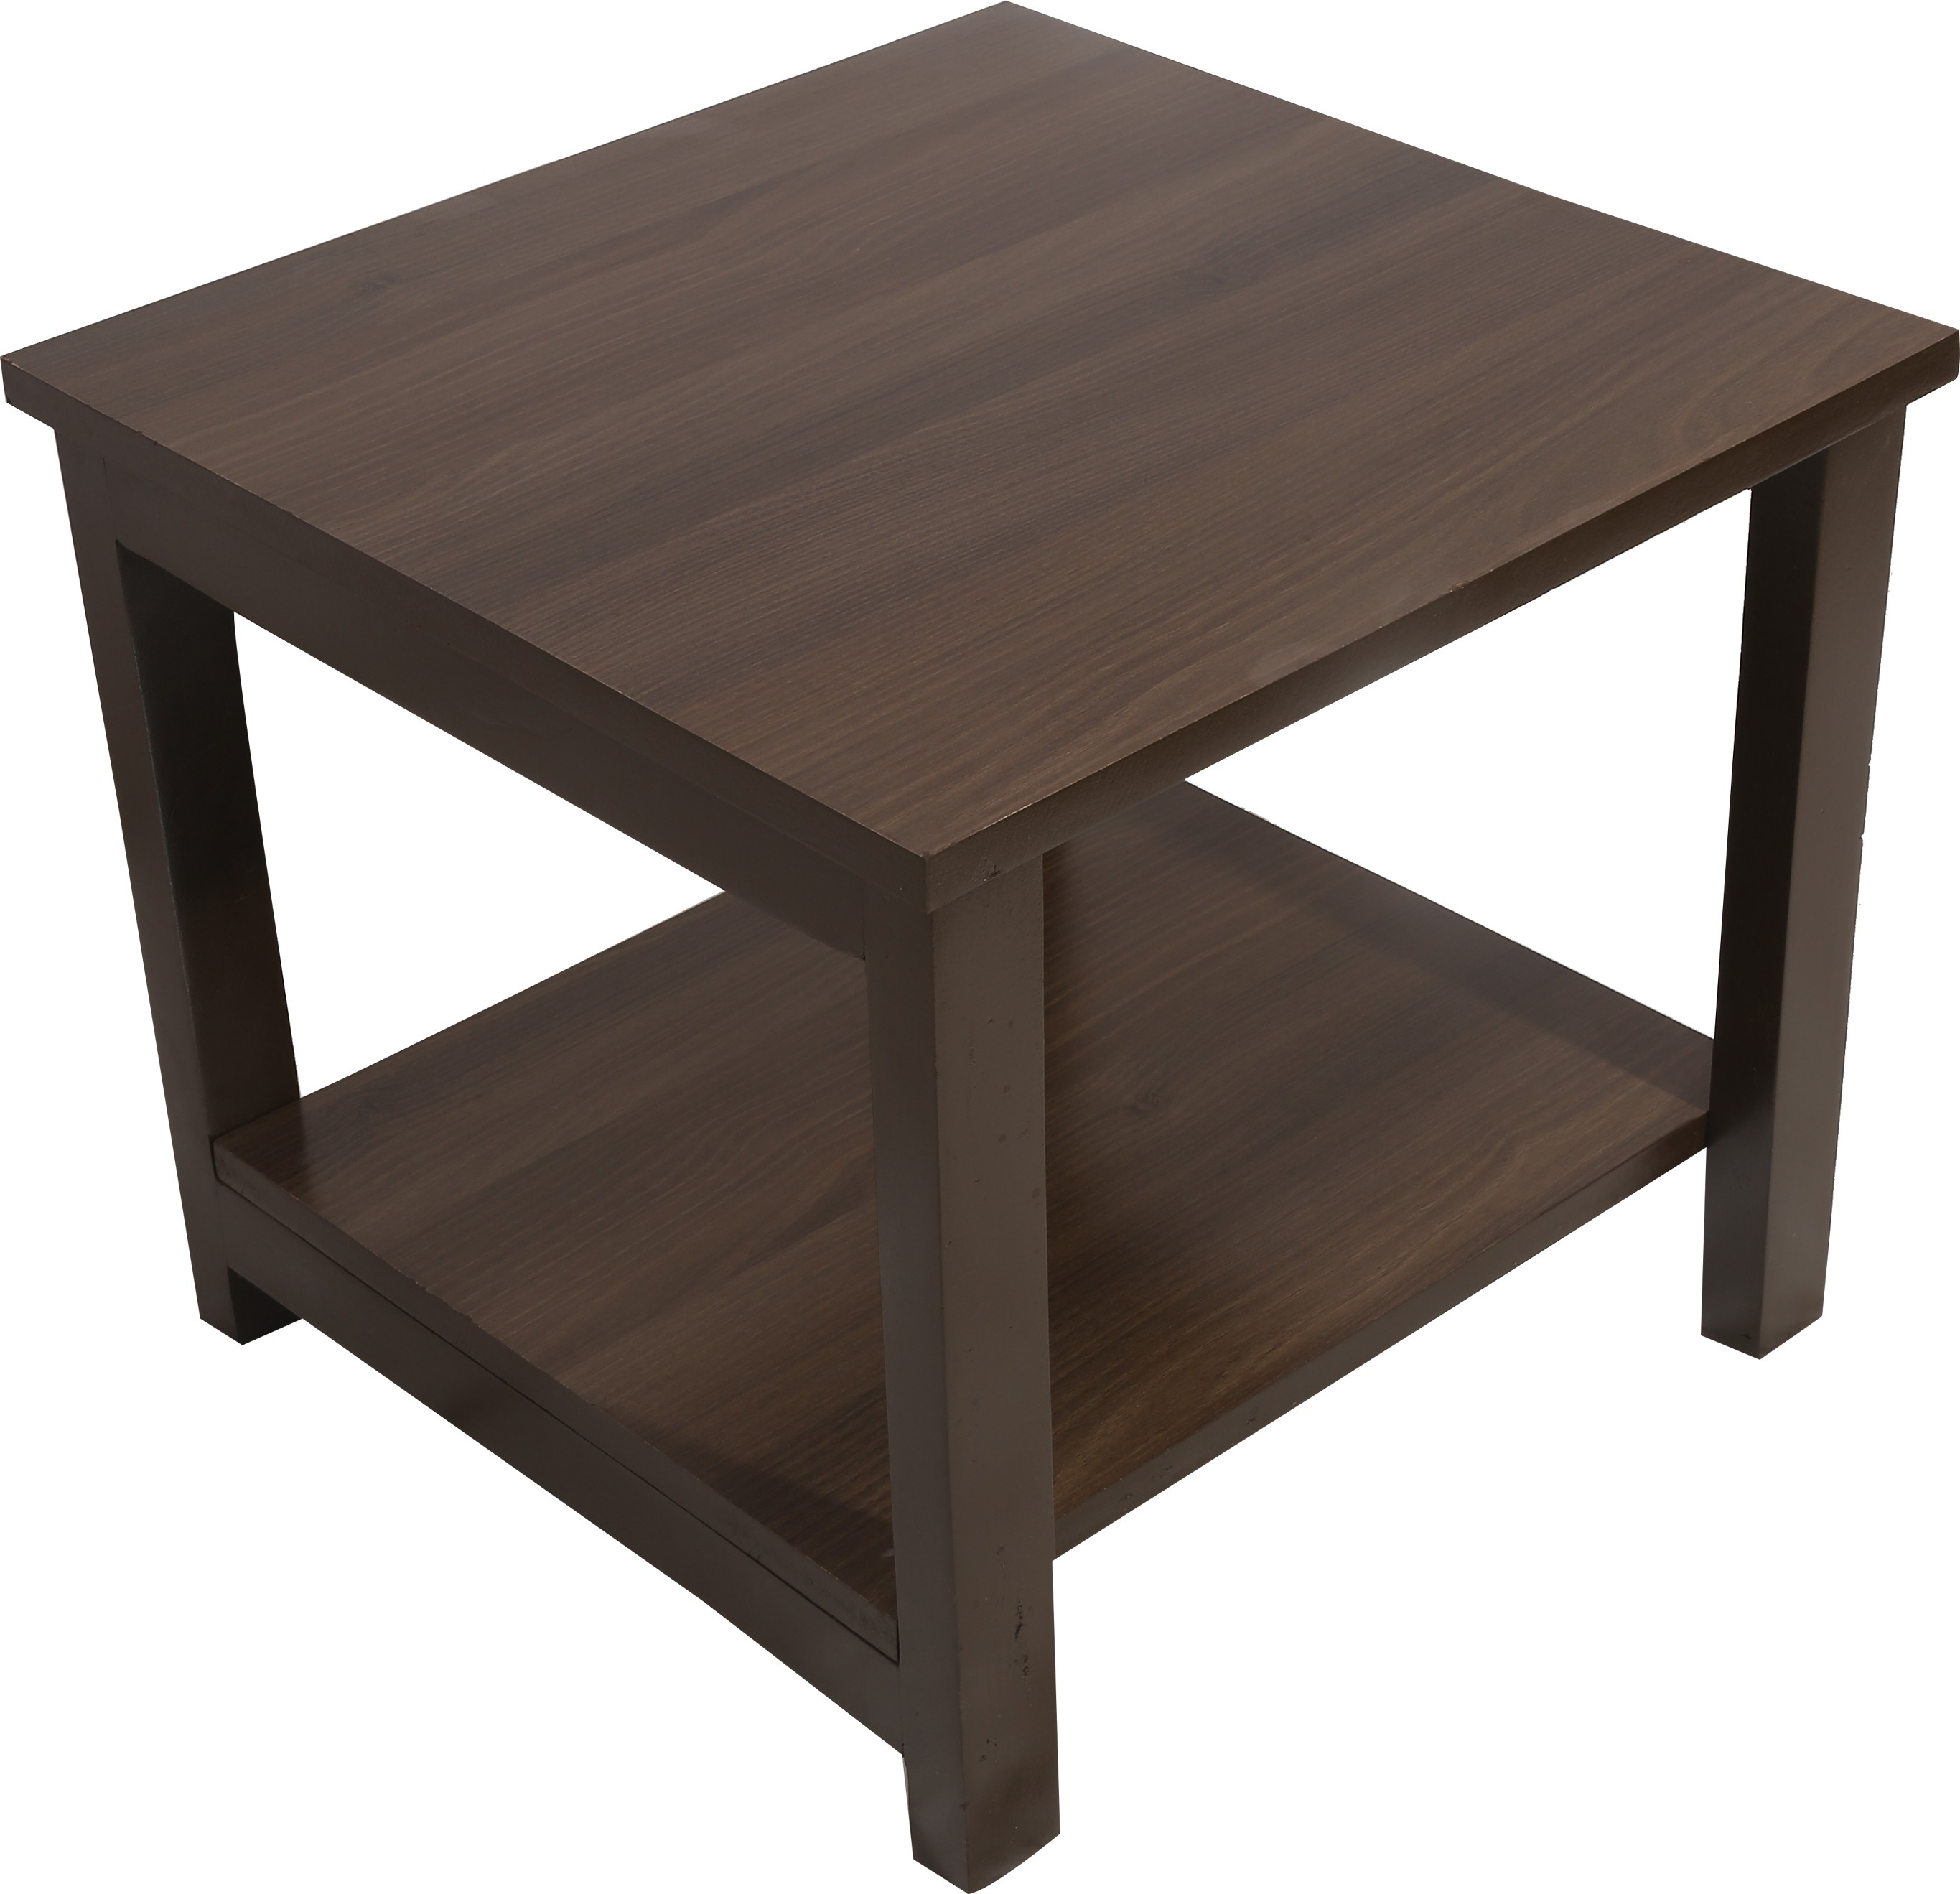 View Ikiriya Engineered Wood Coffee Table(Finish Color - WENGE) Furniture (Ikiriya)